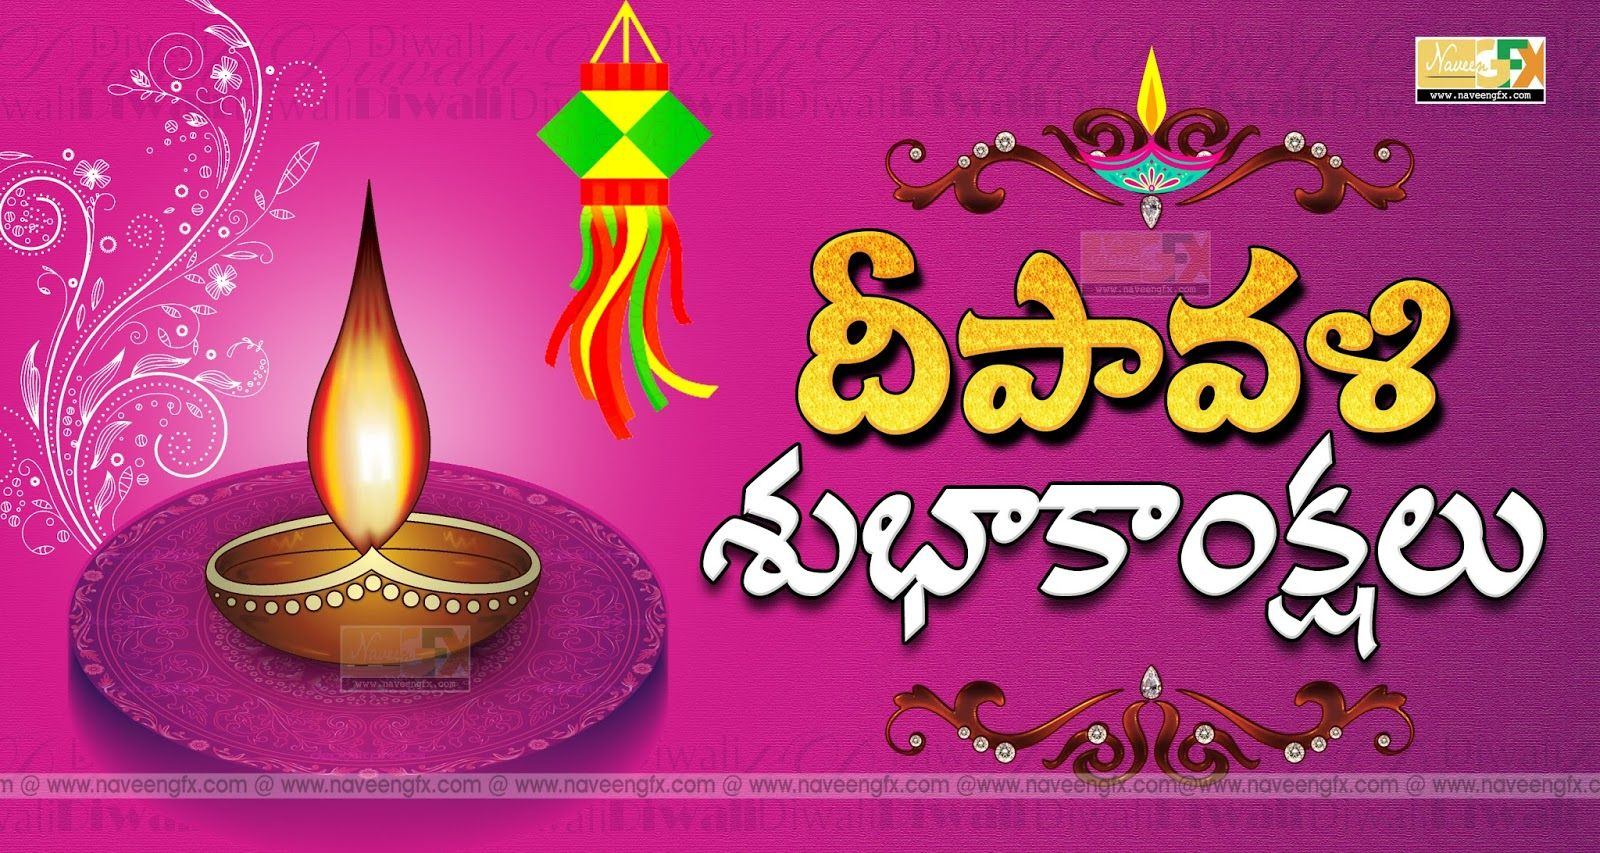 Here is a 2015 deepavali telugu quotes and messages online top here is a 2015 deepavali telugu quotes and messages online top telugu diwali wishes and kristyandbryce Choice Image